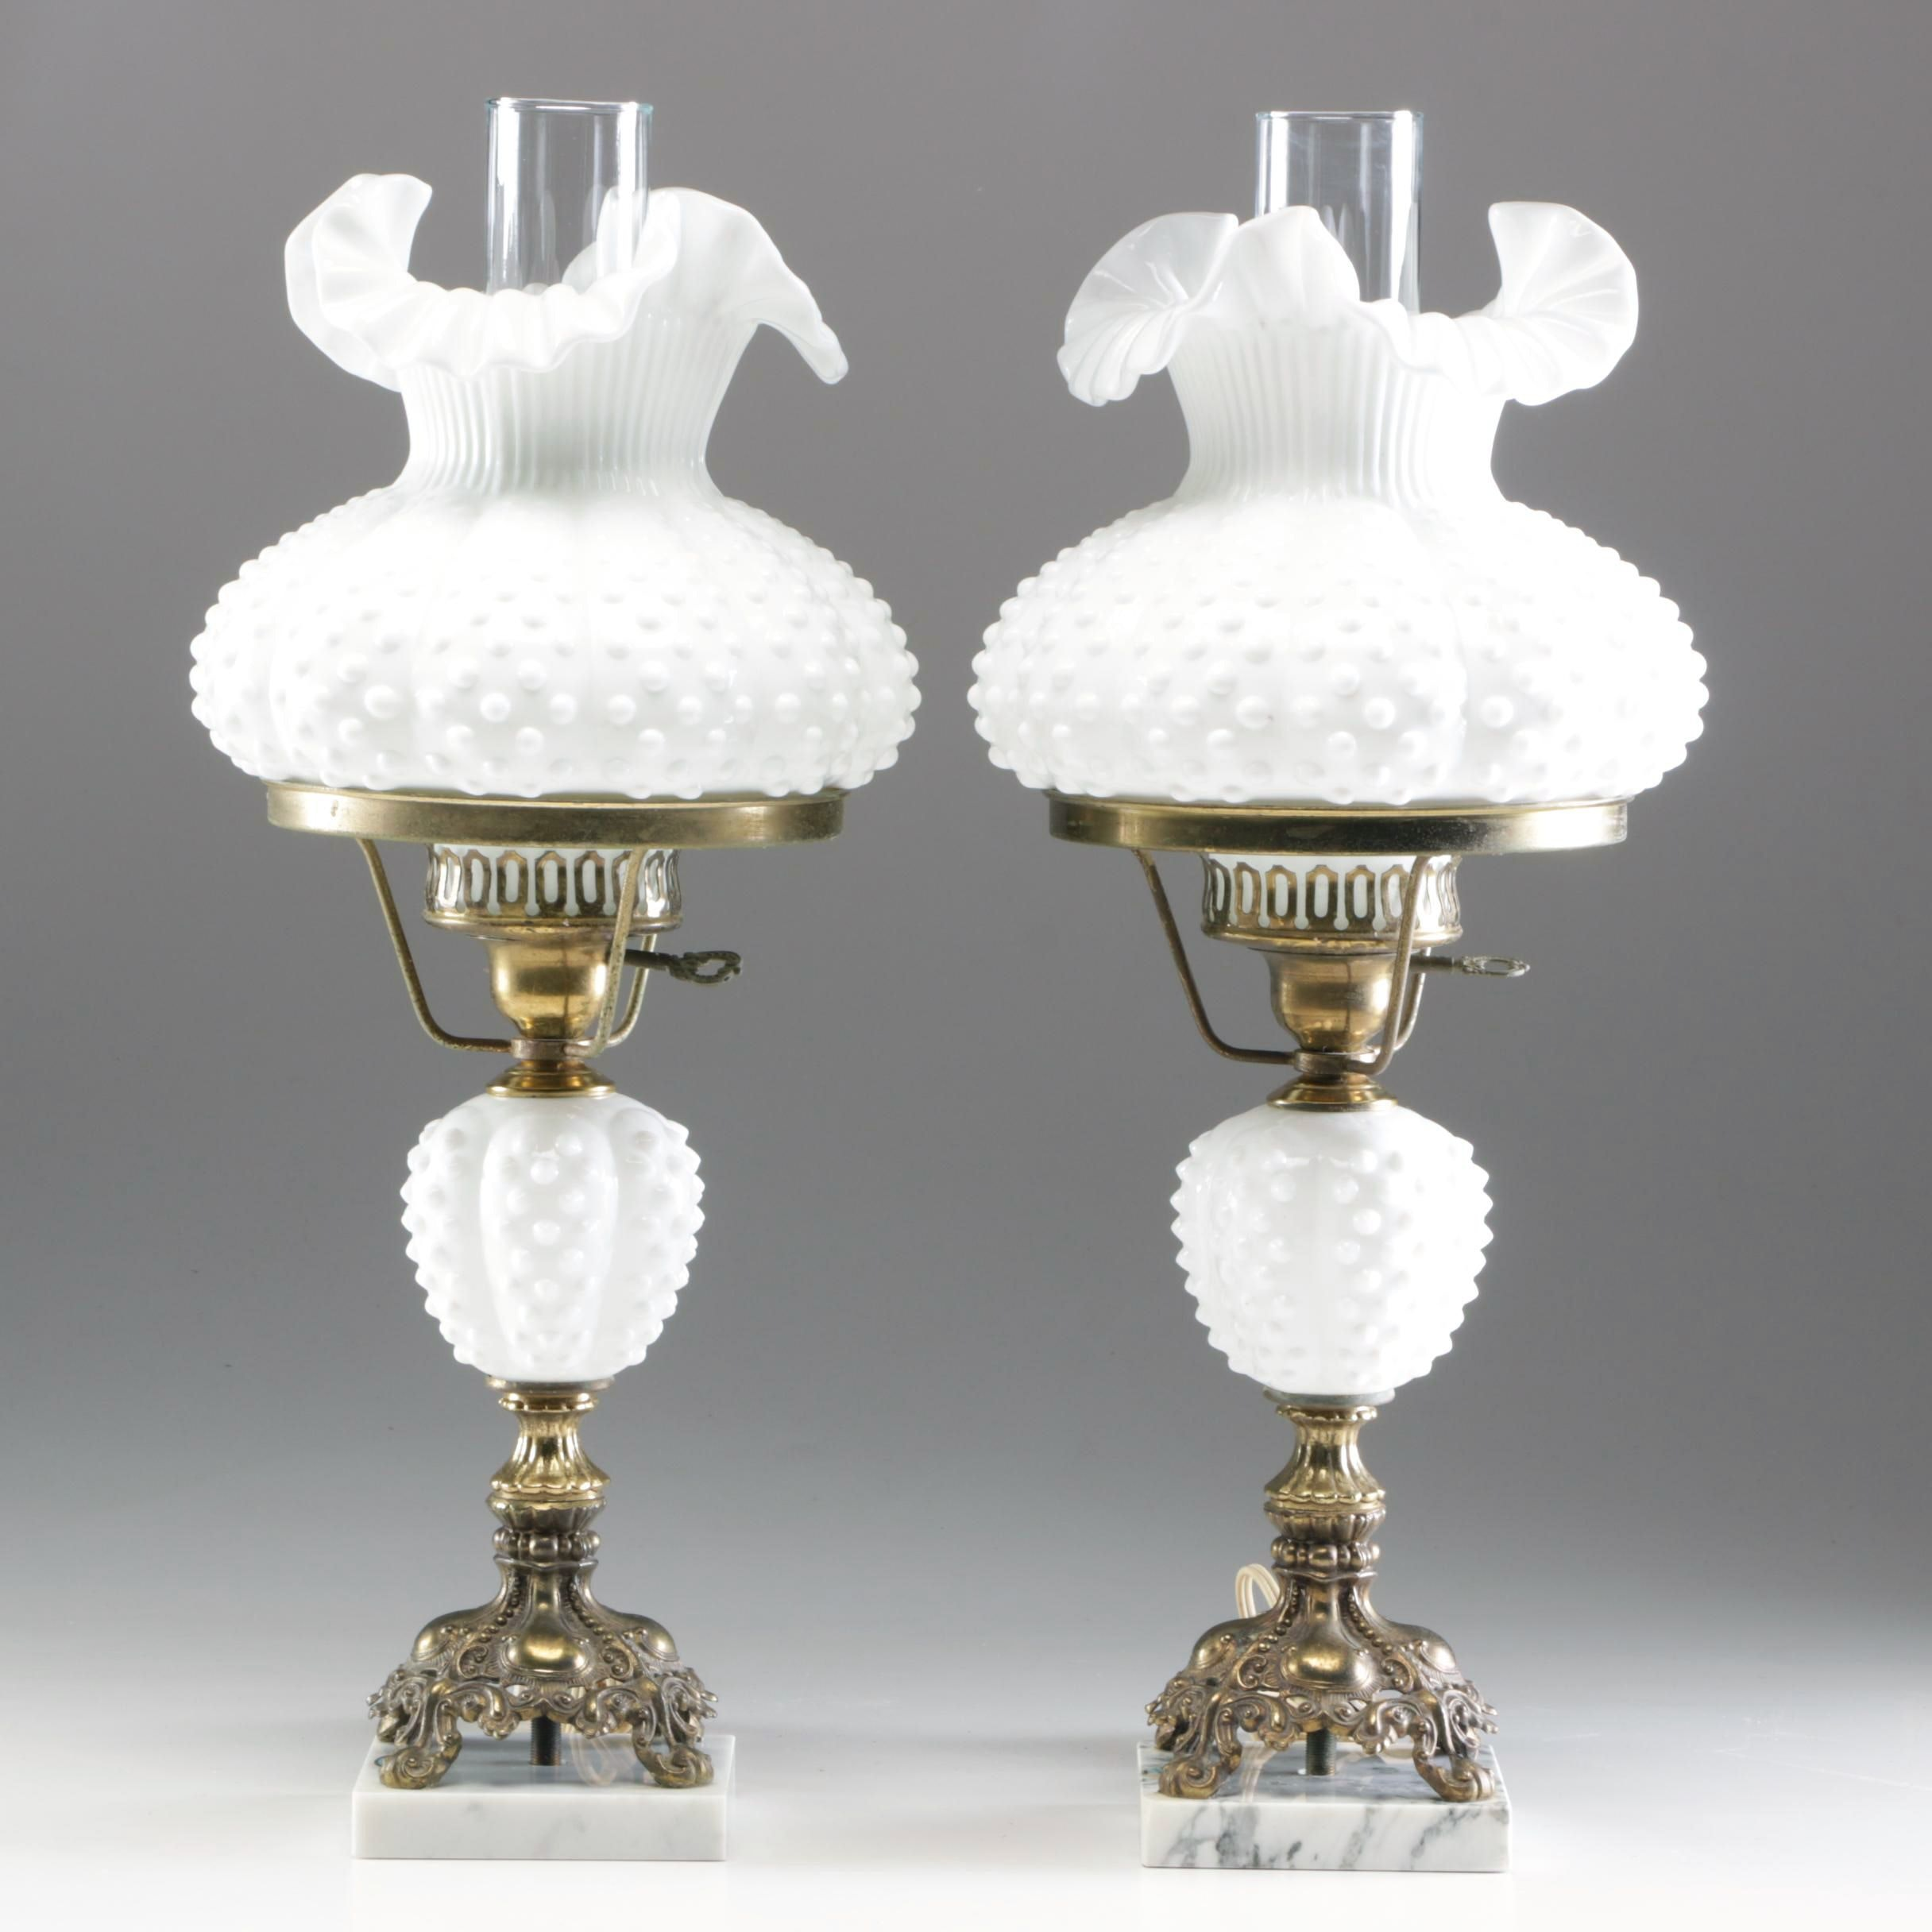 Hobnail Milk Glass Parlor Lamps Attributed to Fenton